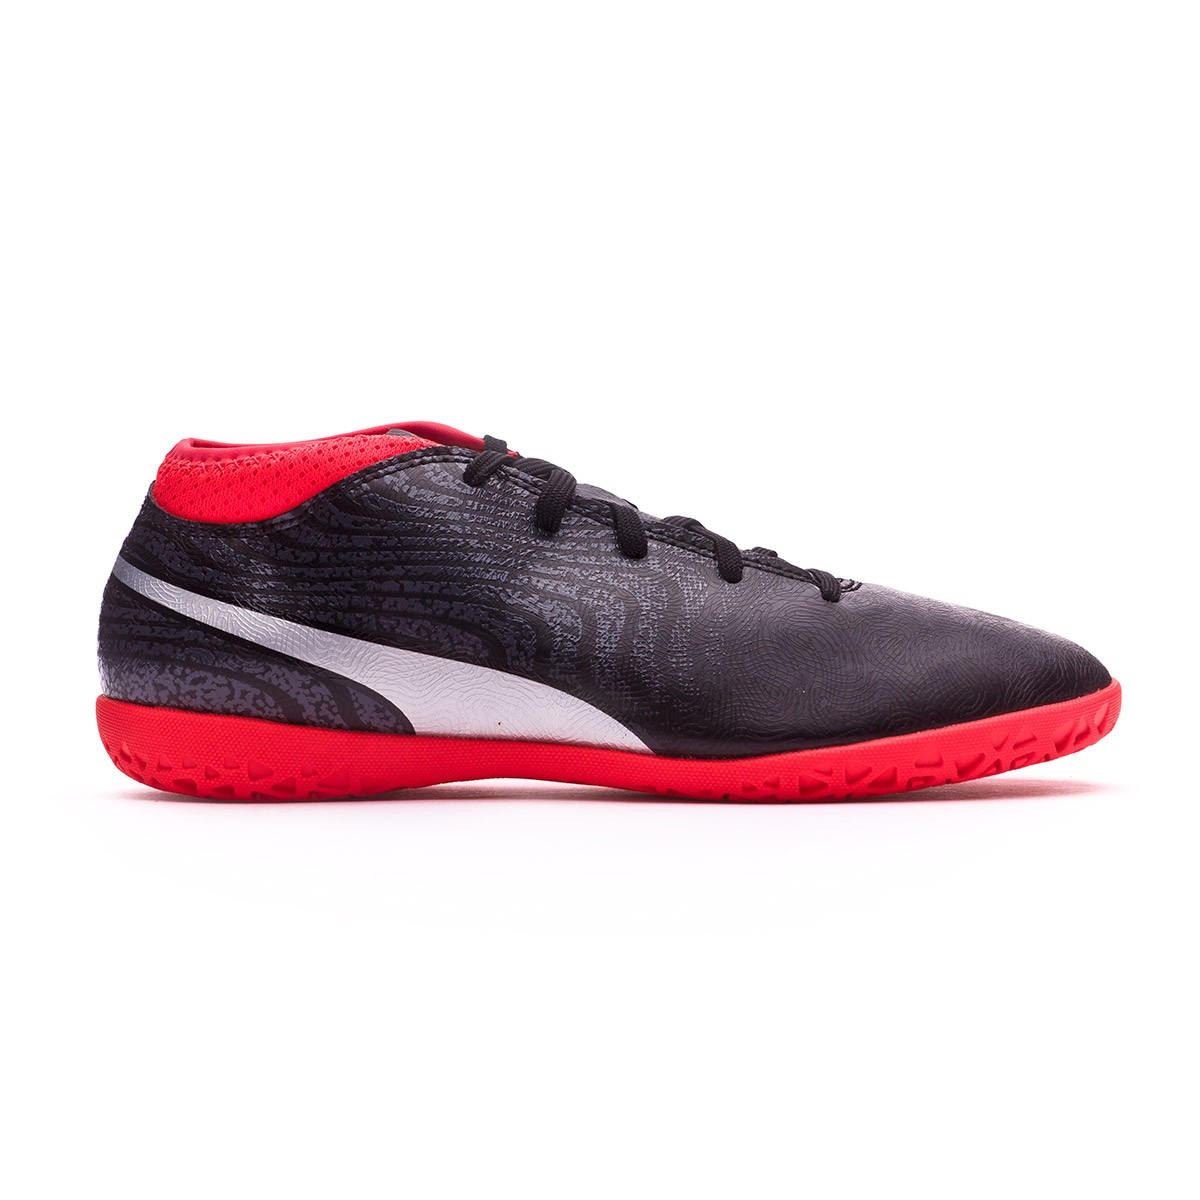 598881d11b49a Zapatilla Puma One 18.4 IT Niño Puma Black-Puma Silver-Red Blast - Tienda  de fútbol Fútbol Emotion